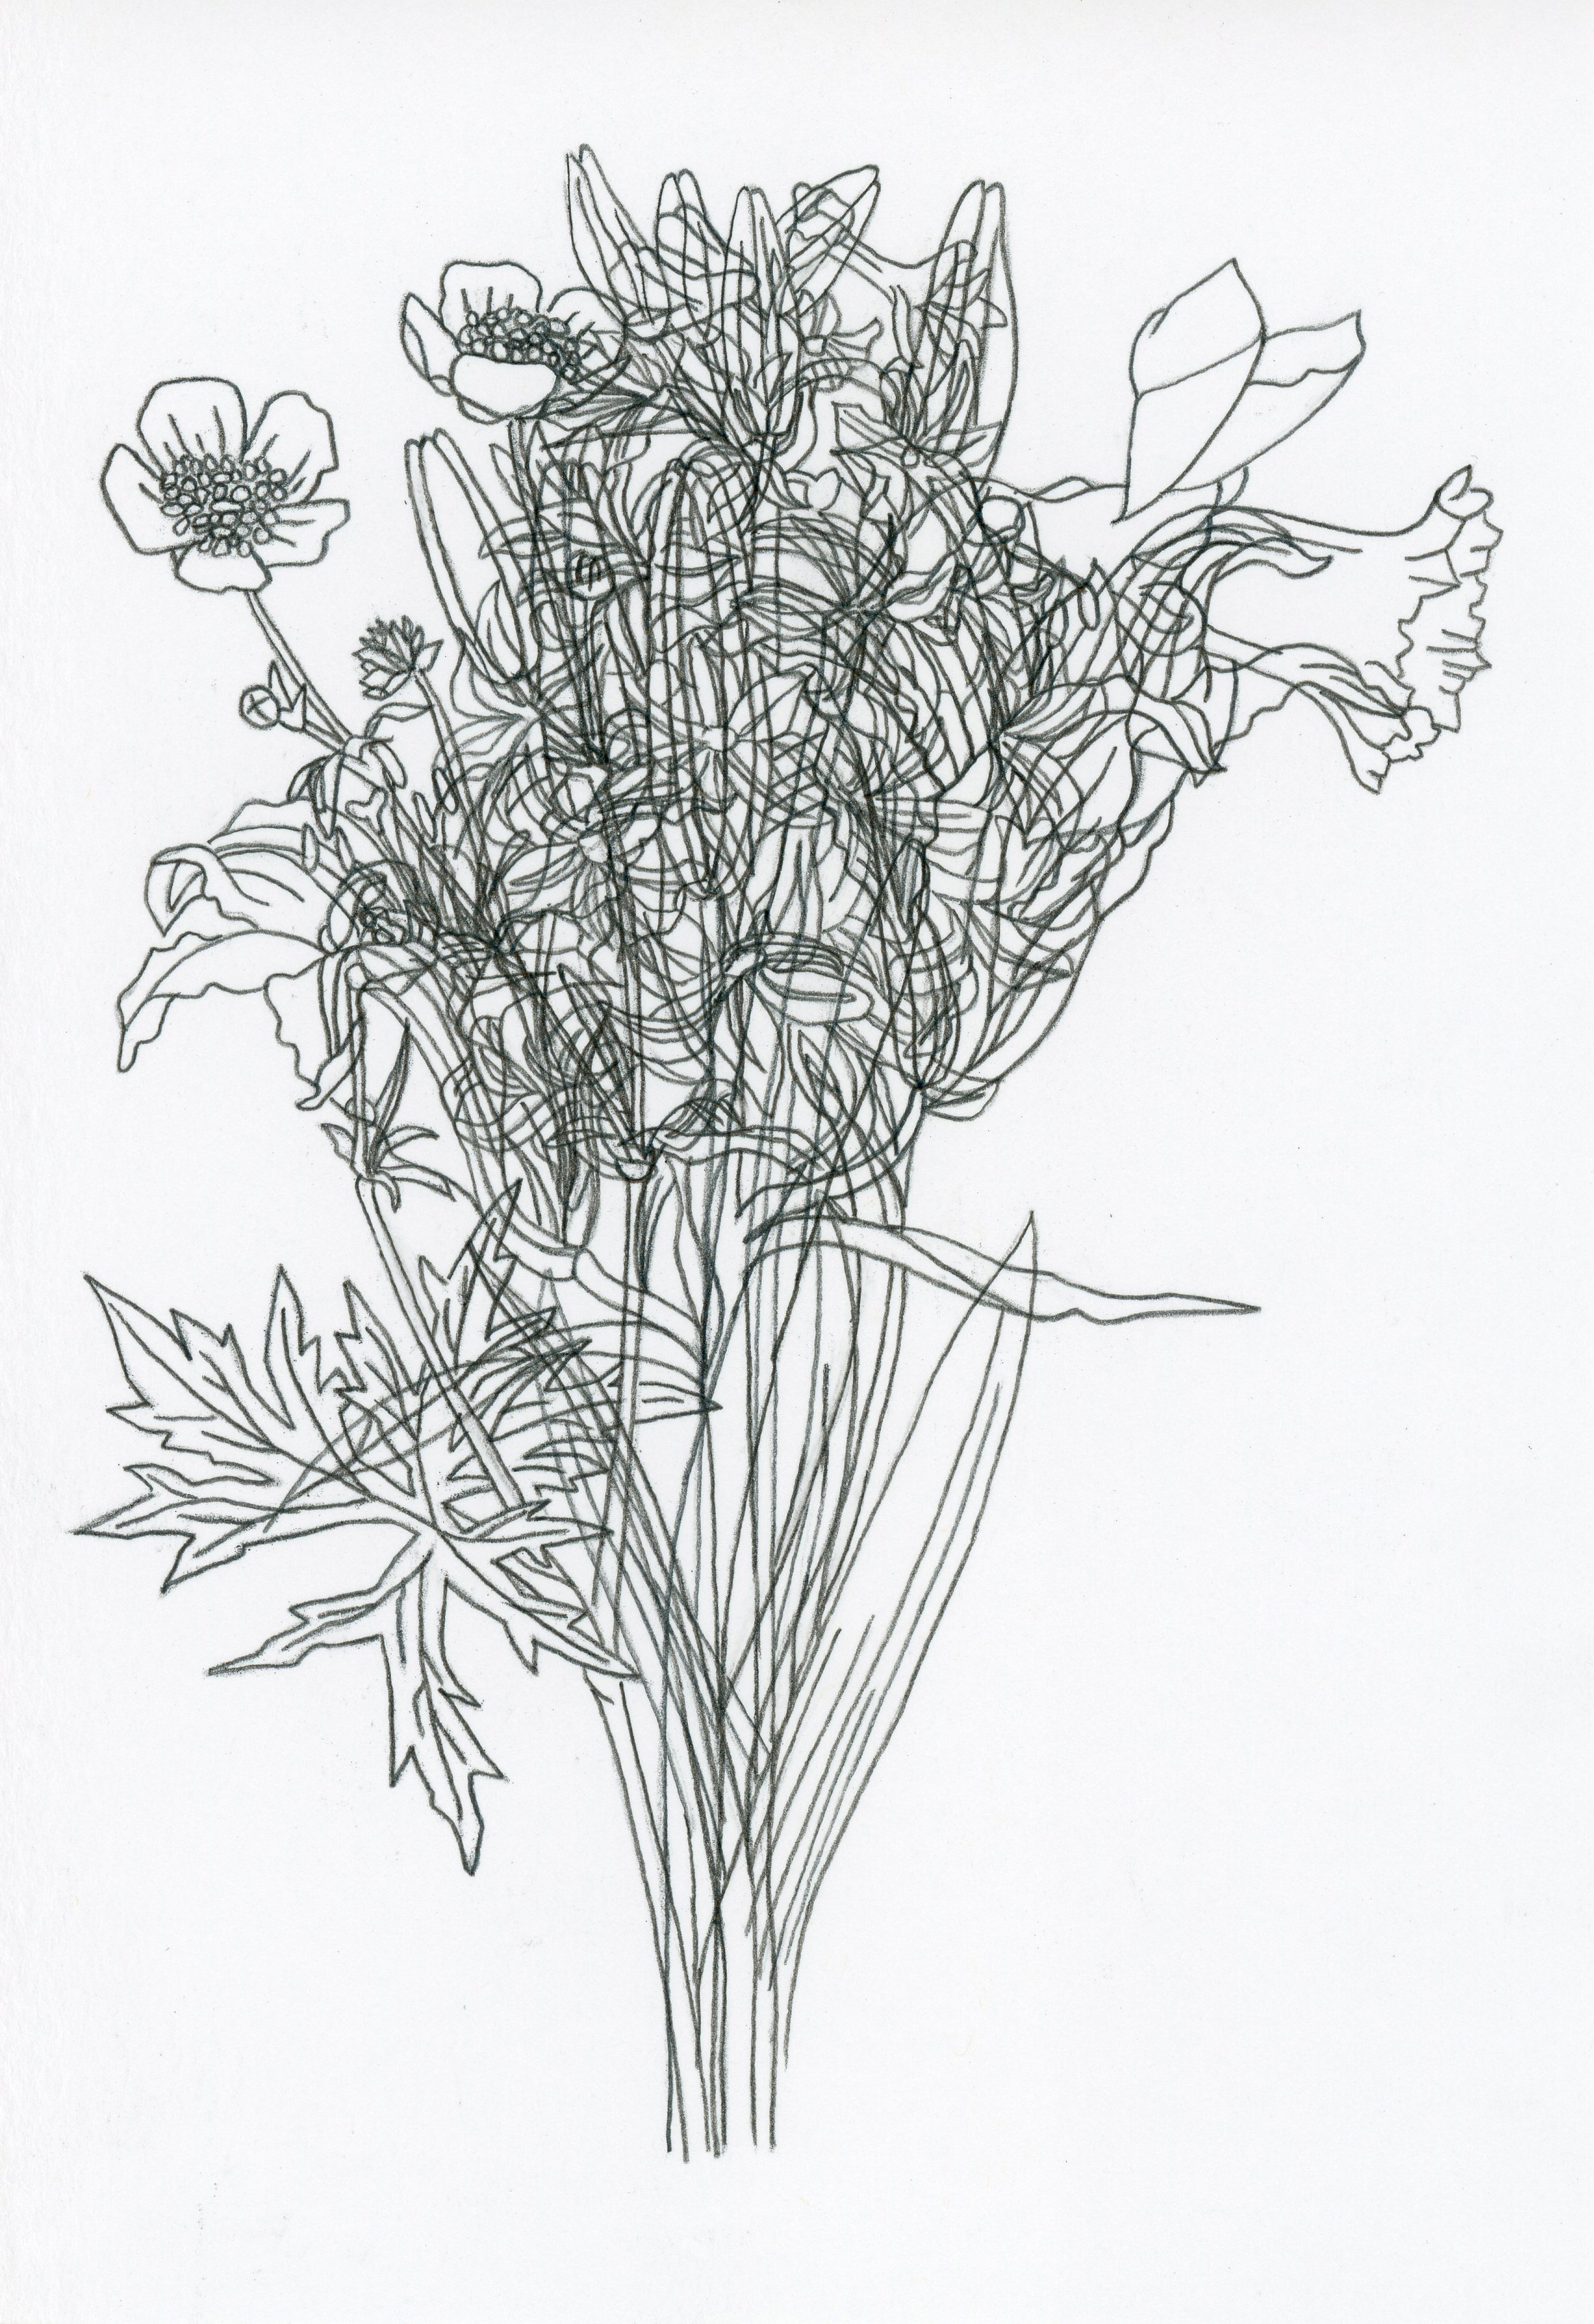 4. Carolyn Thompson - After Parker - Buttercup, daffodil, lily, hyacinth, freesia, forsythia, rose p1.jpg